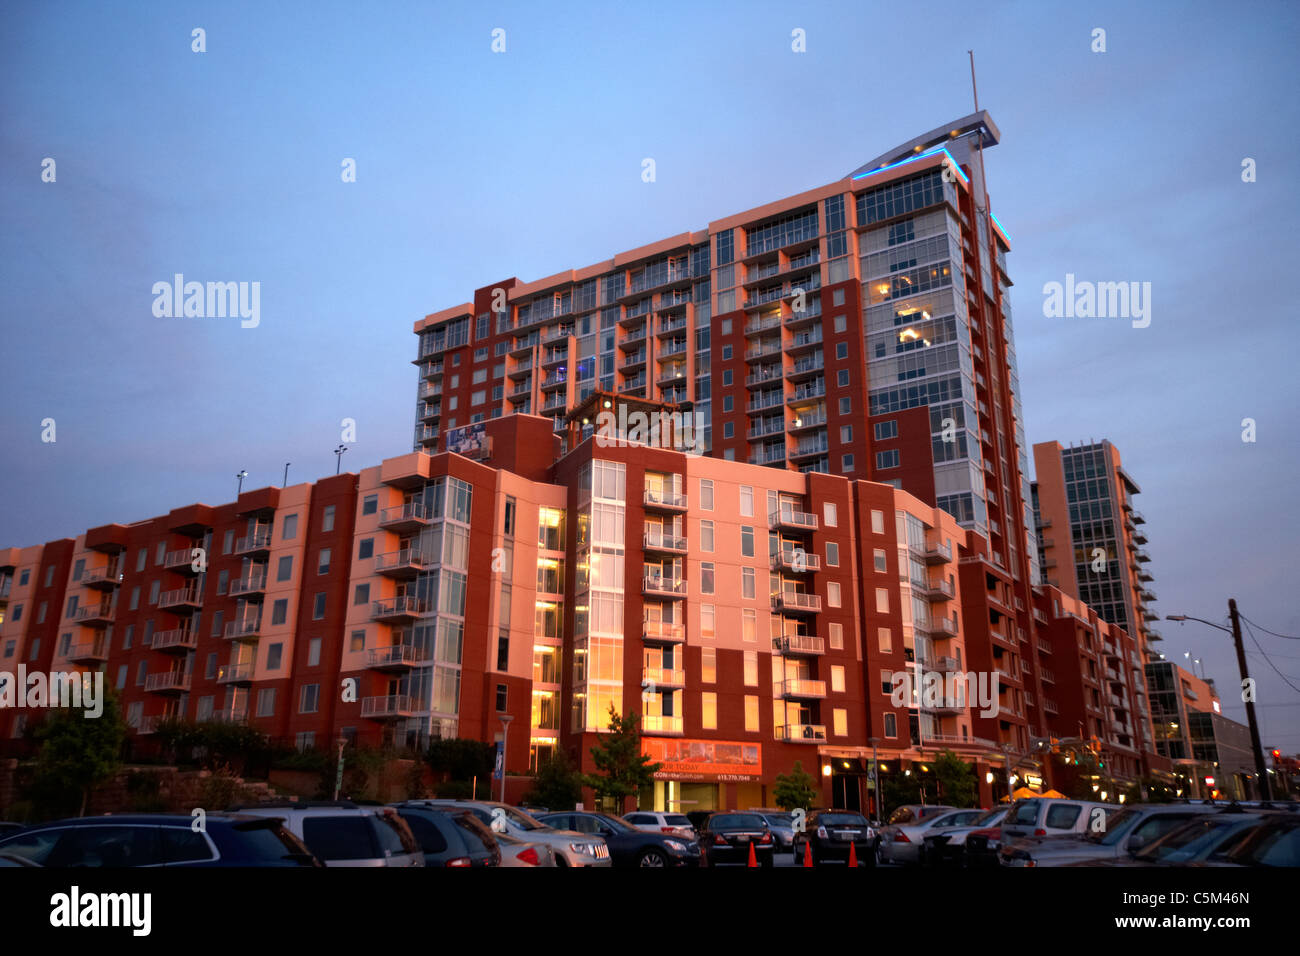 icon at the gulch neighbourhood in Nashville Tennessee USA - Stock Image